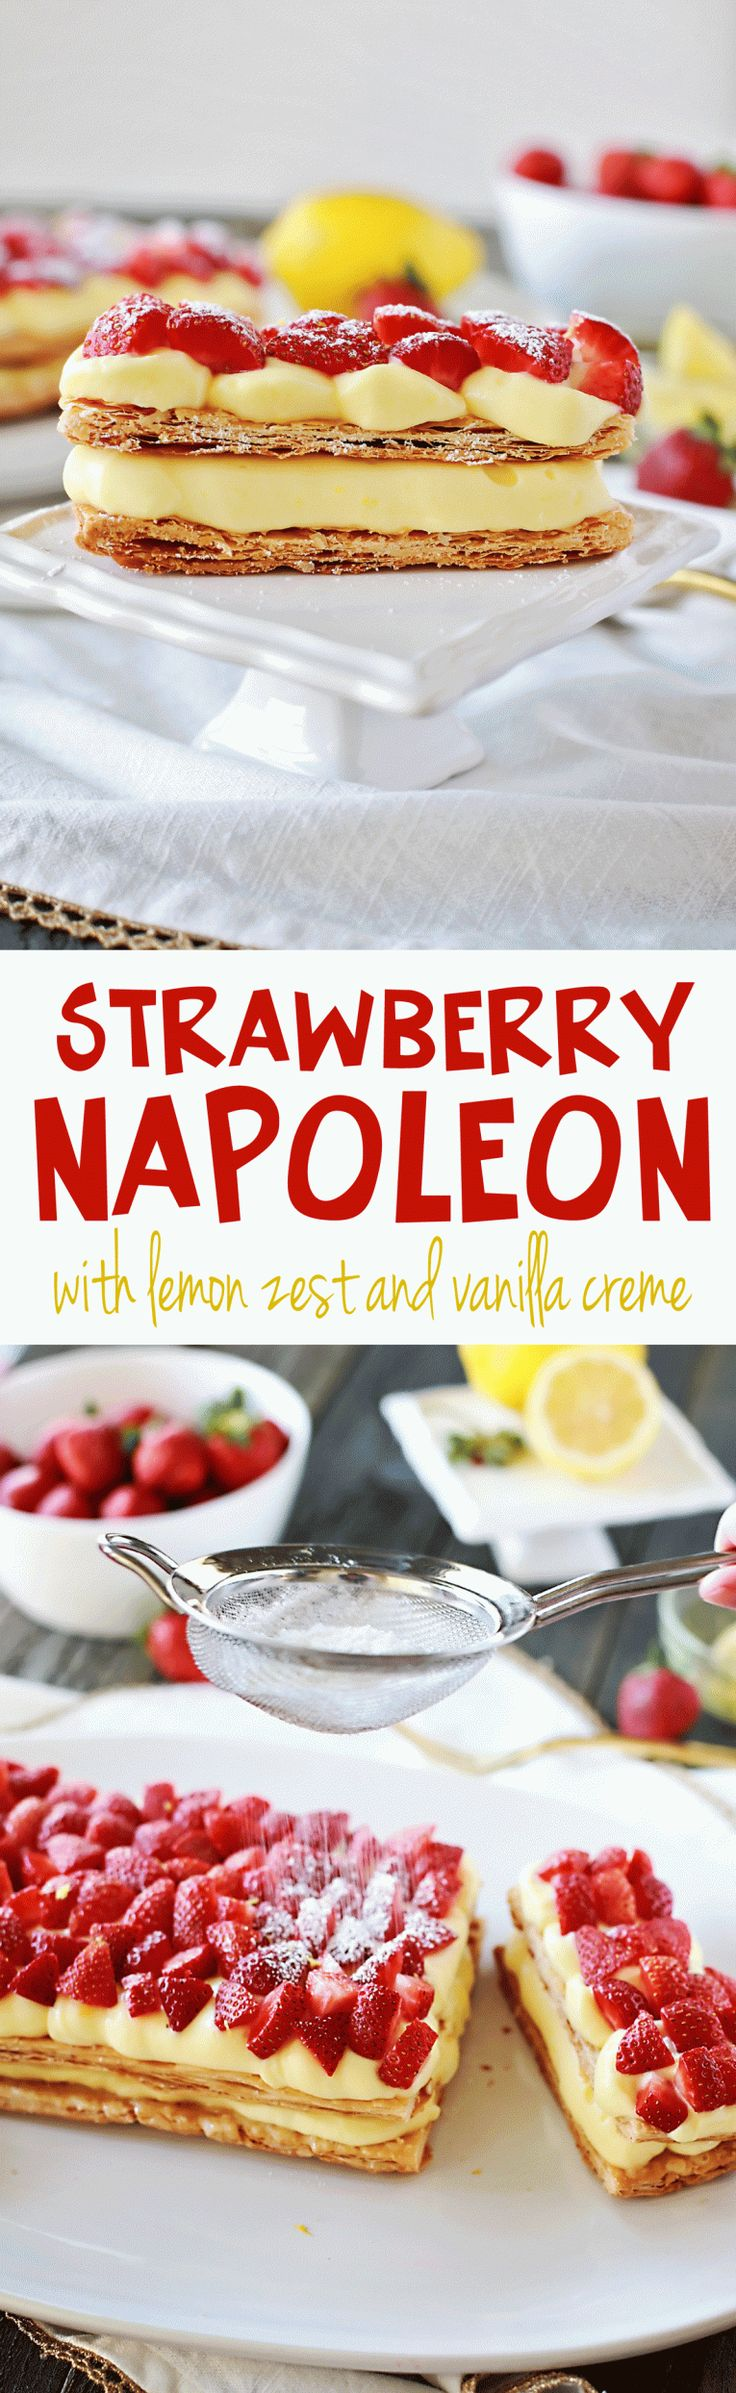 Strawberry Napoleon recipe by Flirting with Flavor! So easy and delicious to make, plus uber beautiful!